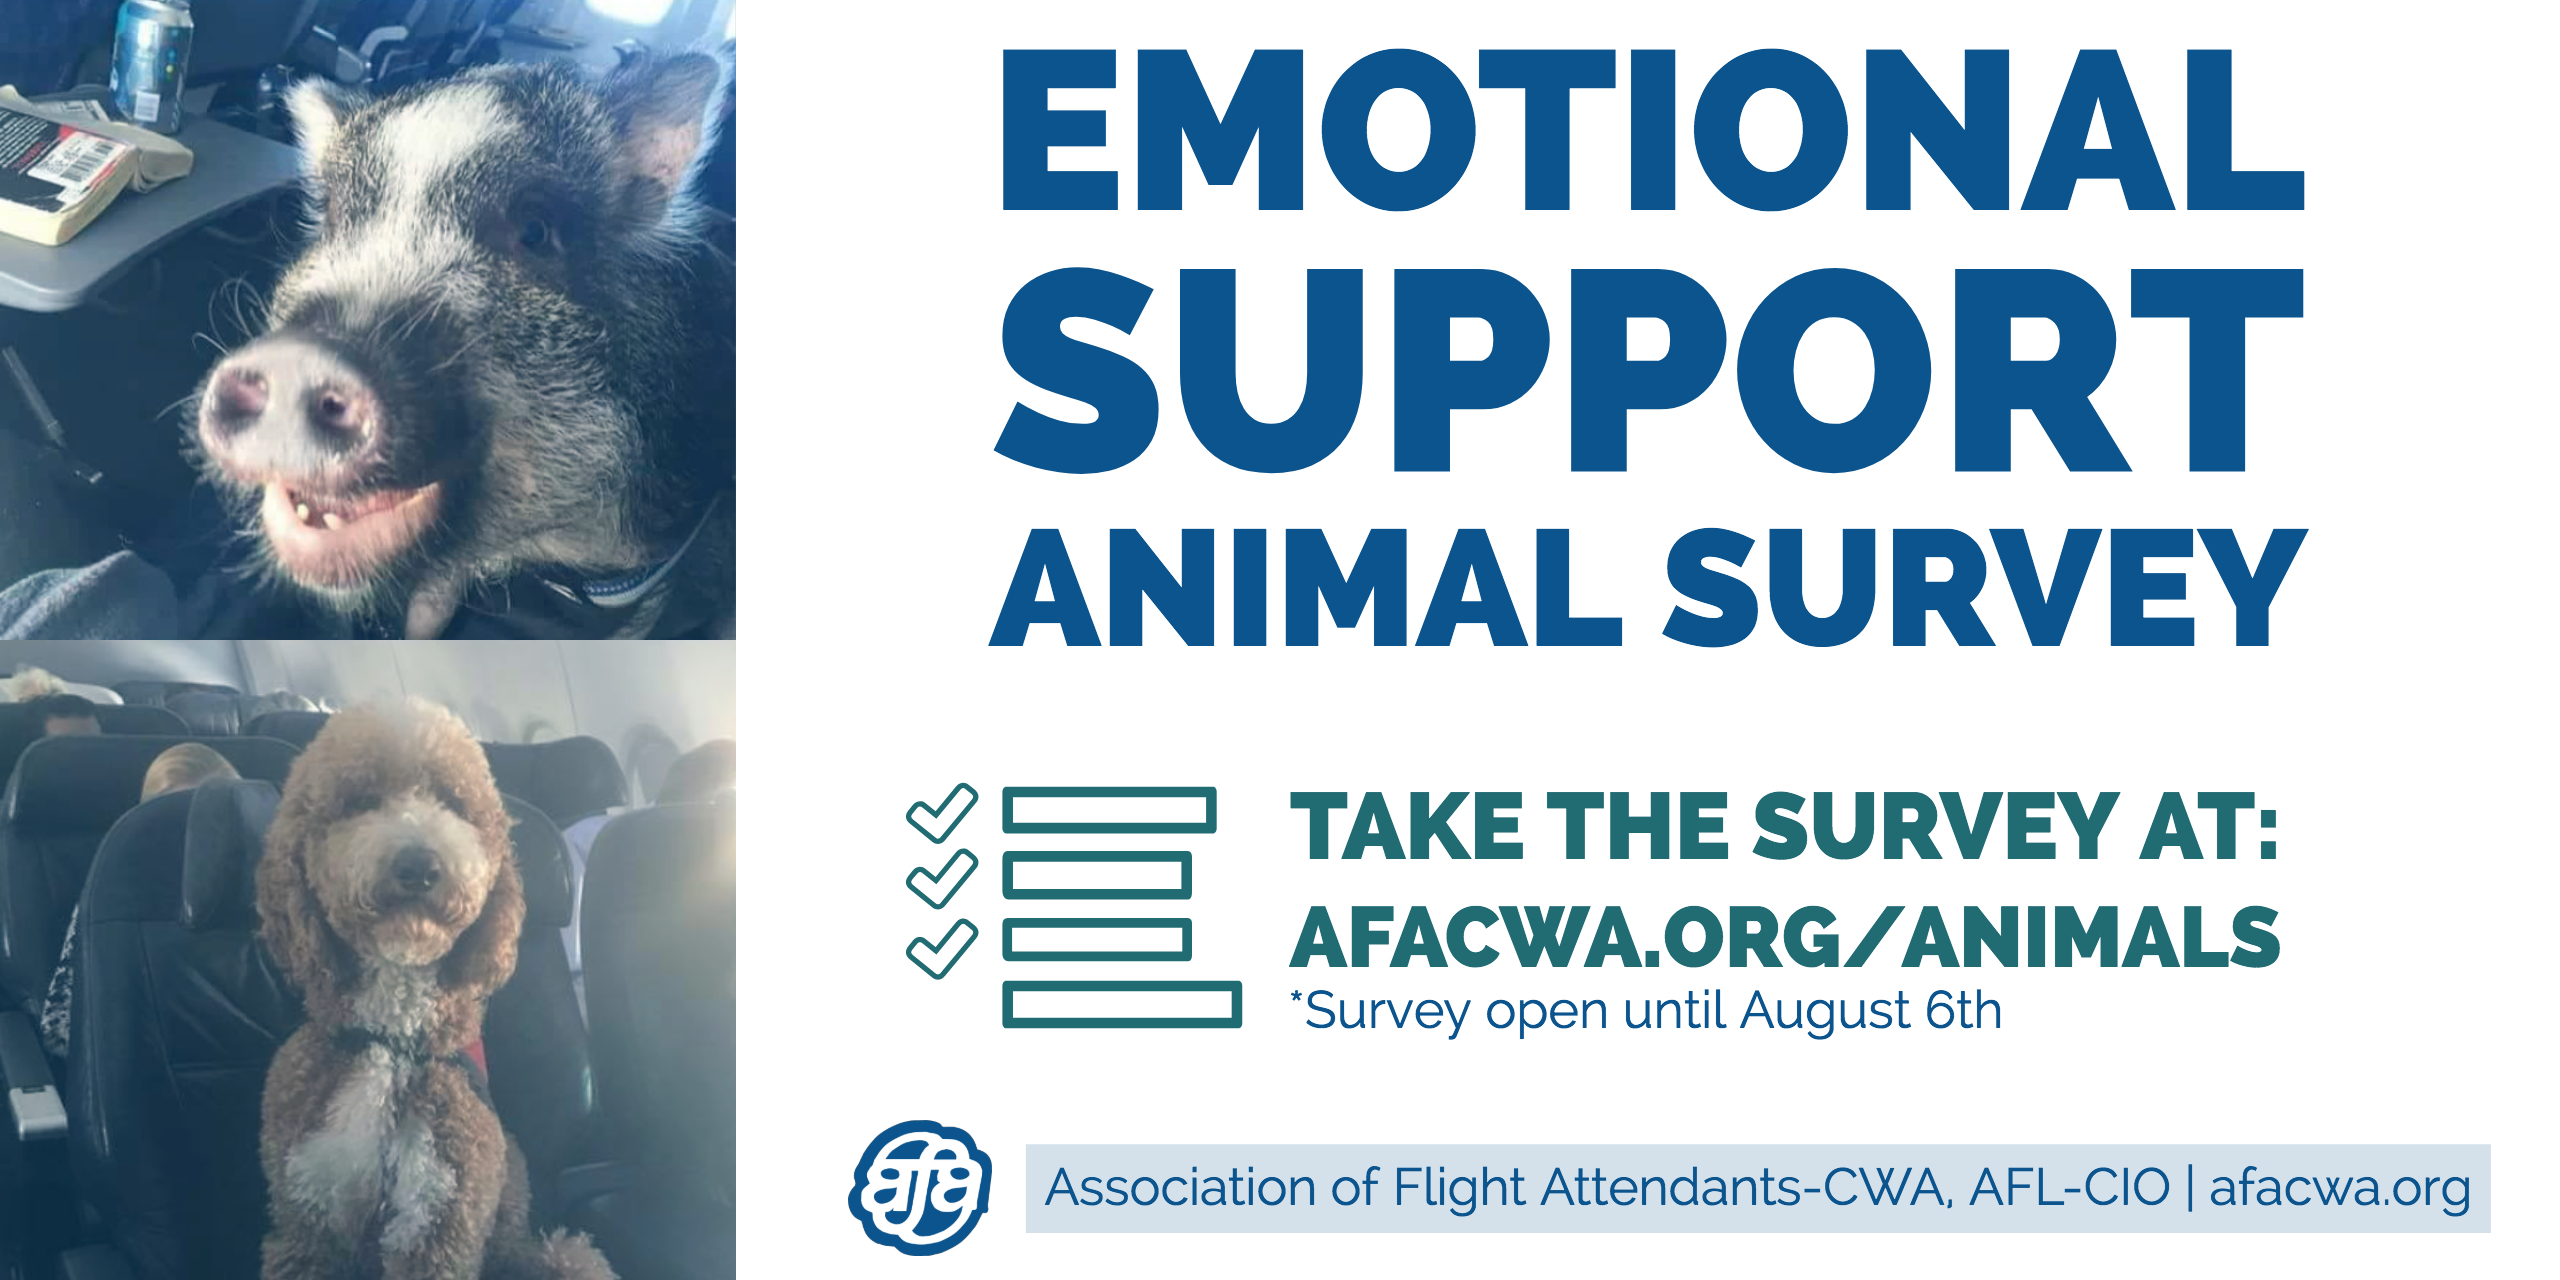 Emotional Support Animal Survey